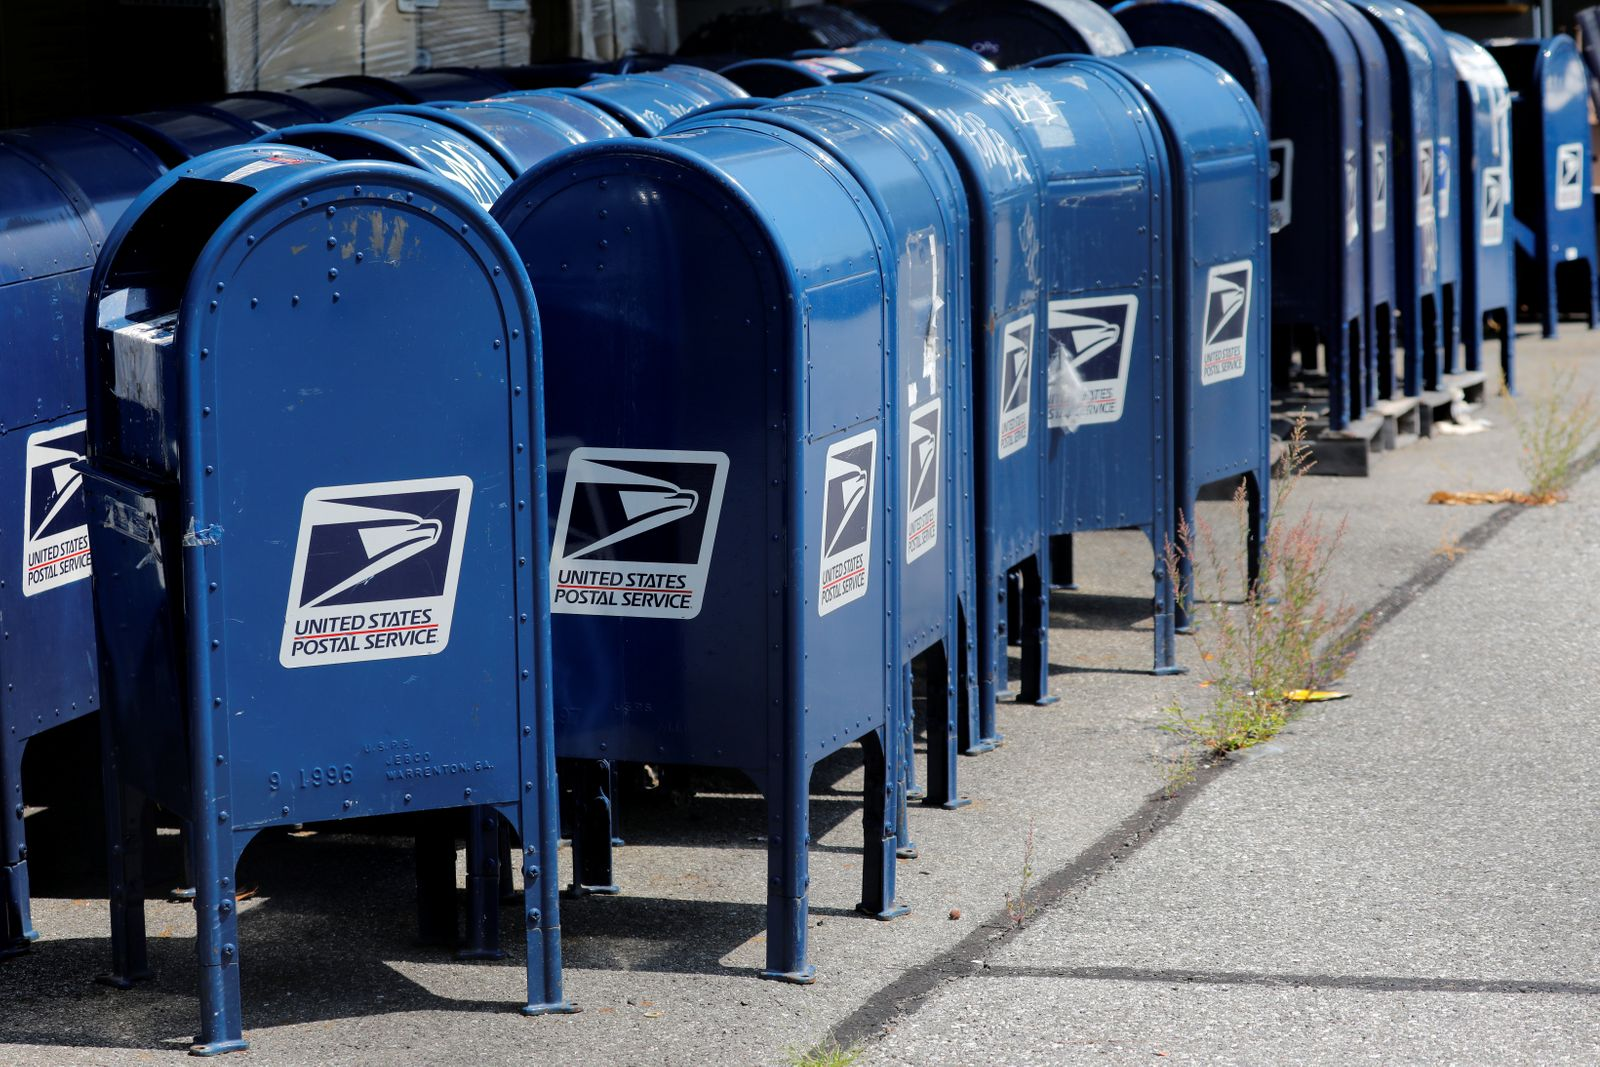 United States Postal Service (USPS) mailboxes are seen stored outside a USPS post office facility in the Bronx New York